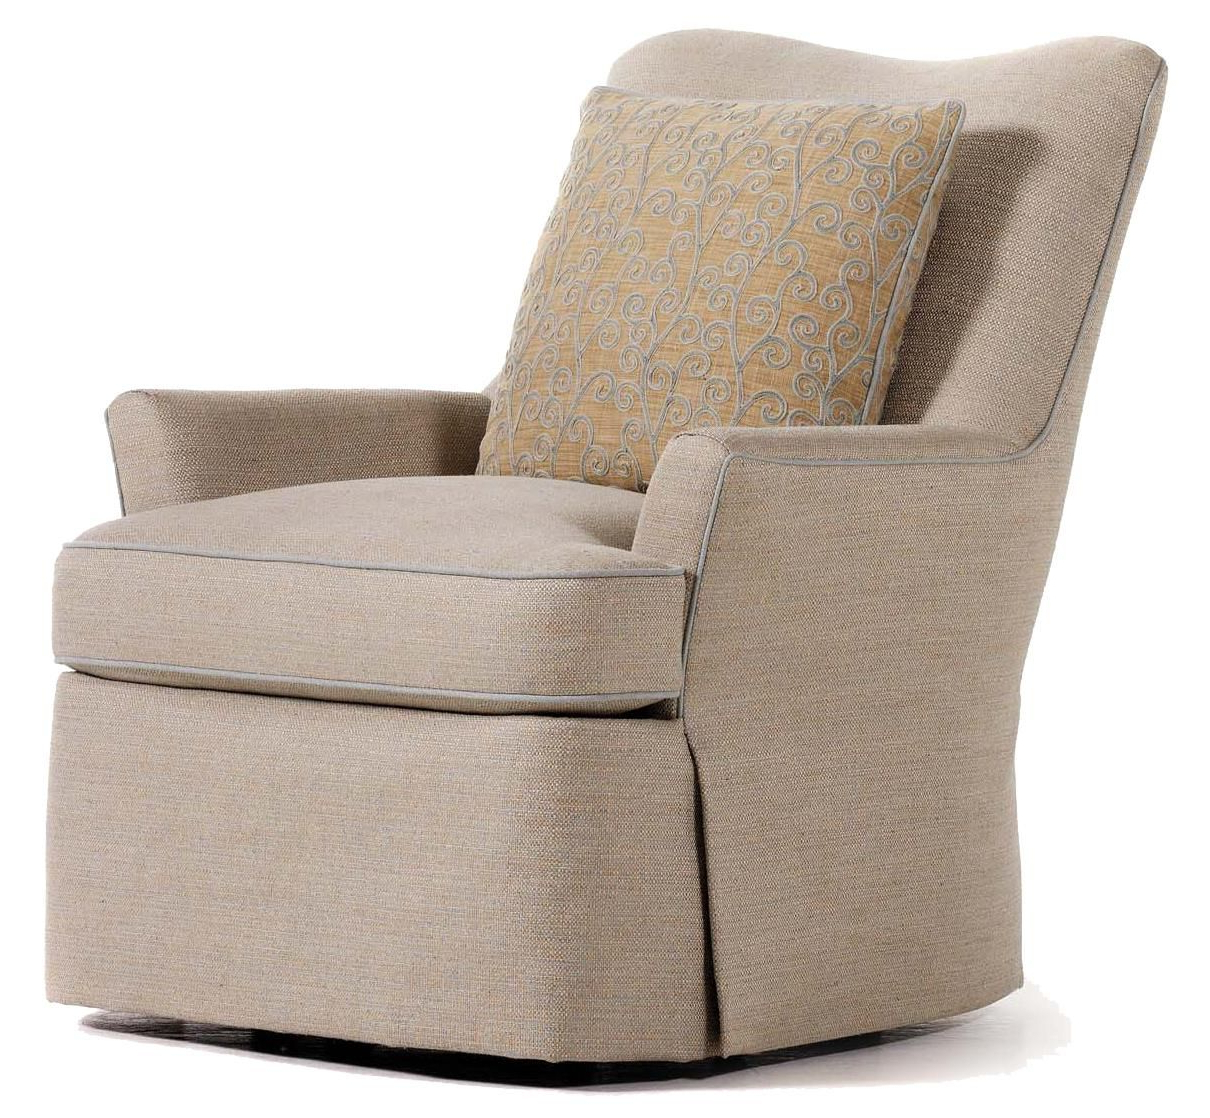 Katrina Beige Swivel Glider Chairs For Popular Durban Swivel Rockerjessica Charles (Gallery 4 of 20)